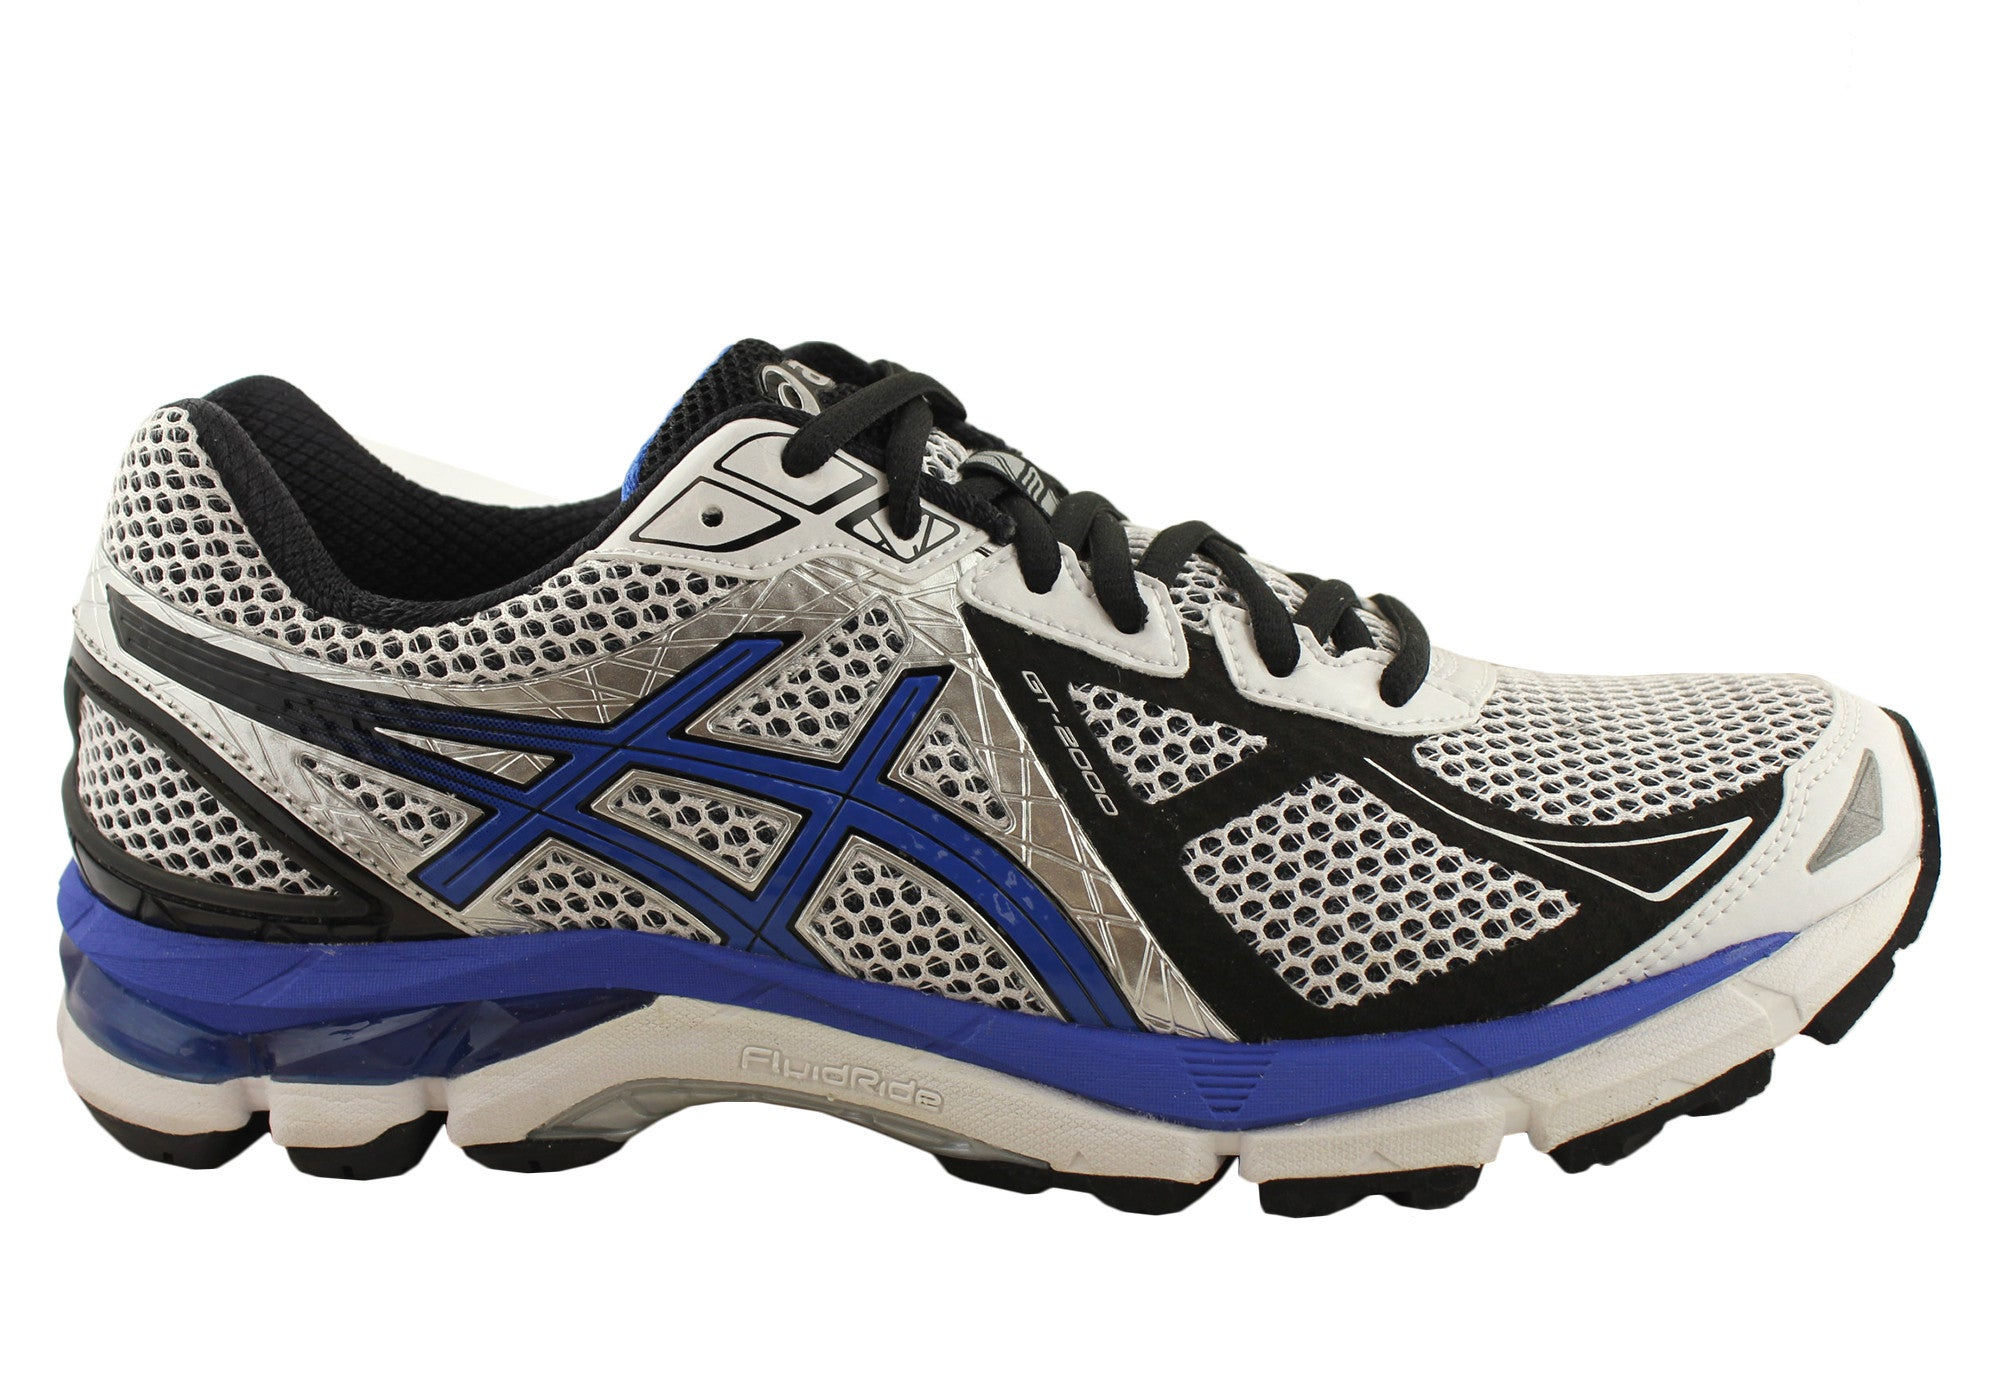 724021ed25c5 Asics GT-2000 3 Mens Cushioned Running Shoes (2E Wide Width)